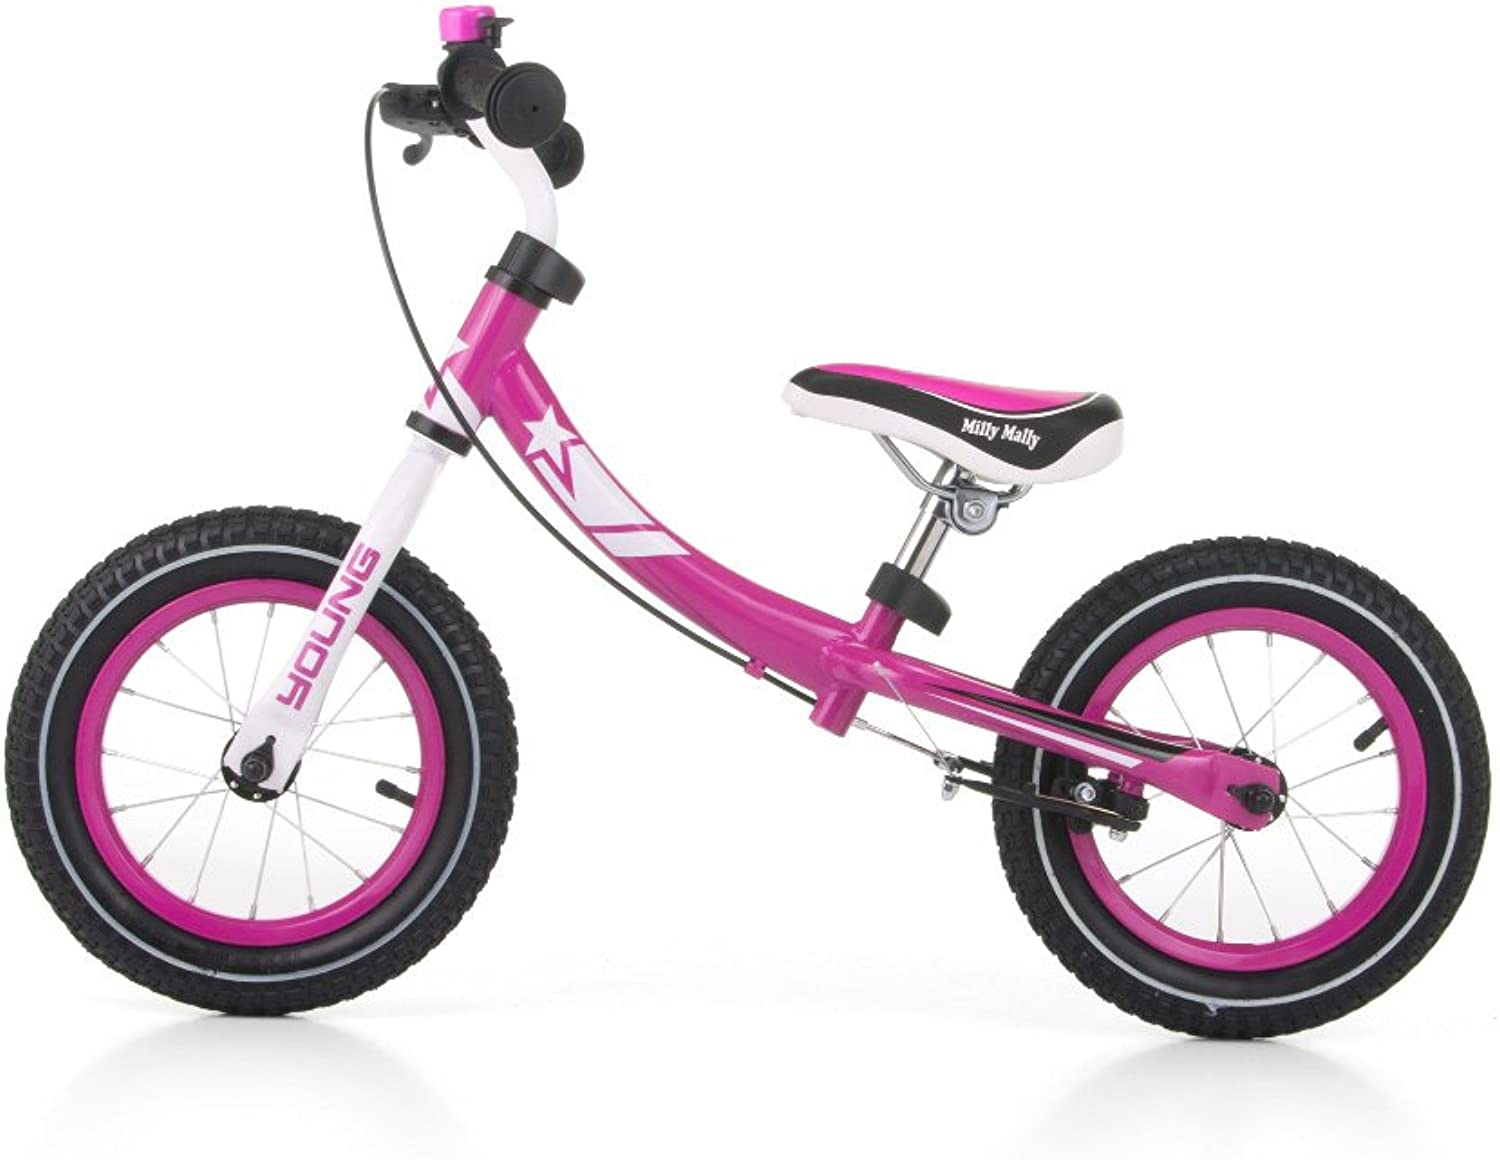 Milly Mally 22084 Young Balance Bike, Pink